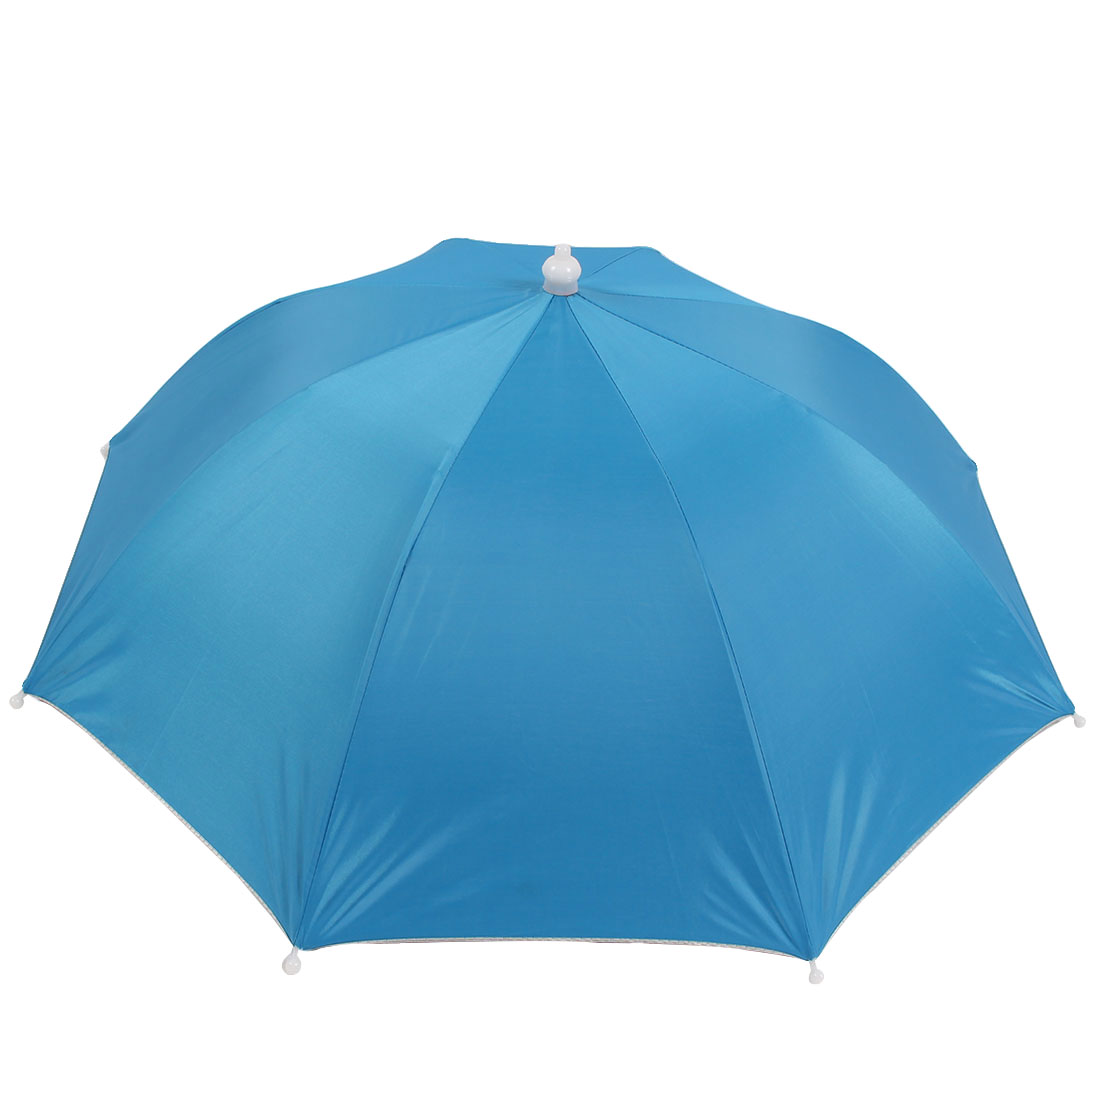 Outdoor Fishing Camping Blue Umbrella Hat Headwear Cap